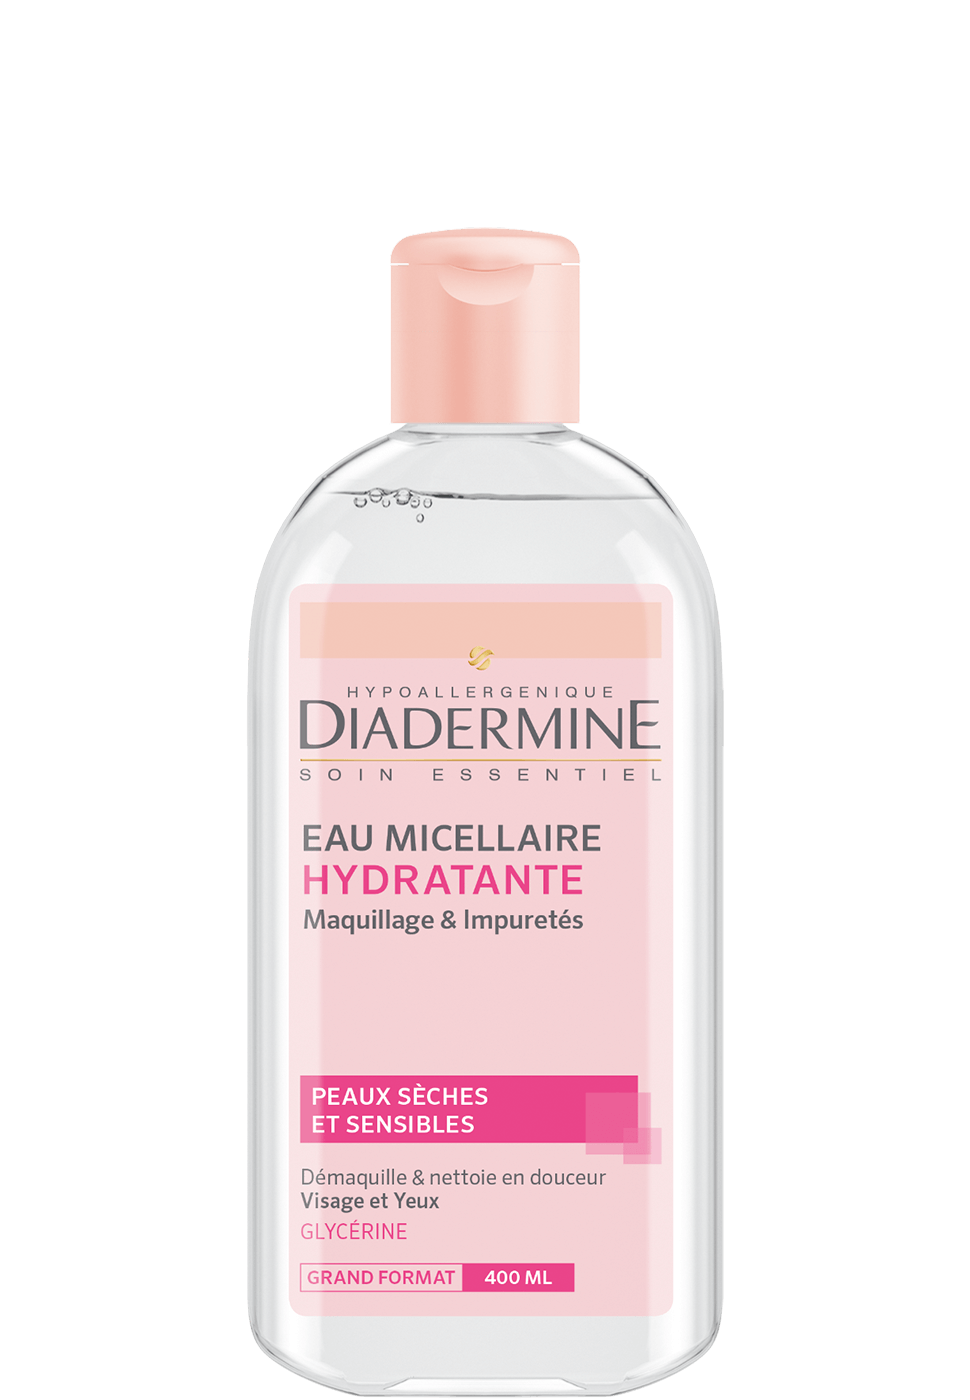 diadermine_com_essentials_ph5_soothing_micellar_water_970x1400